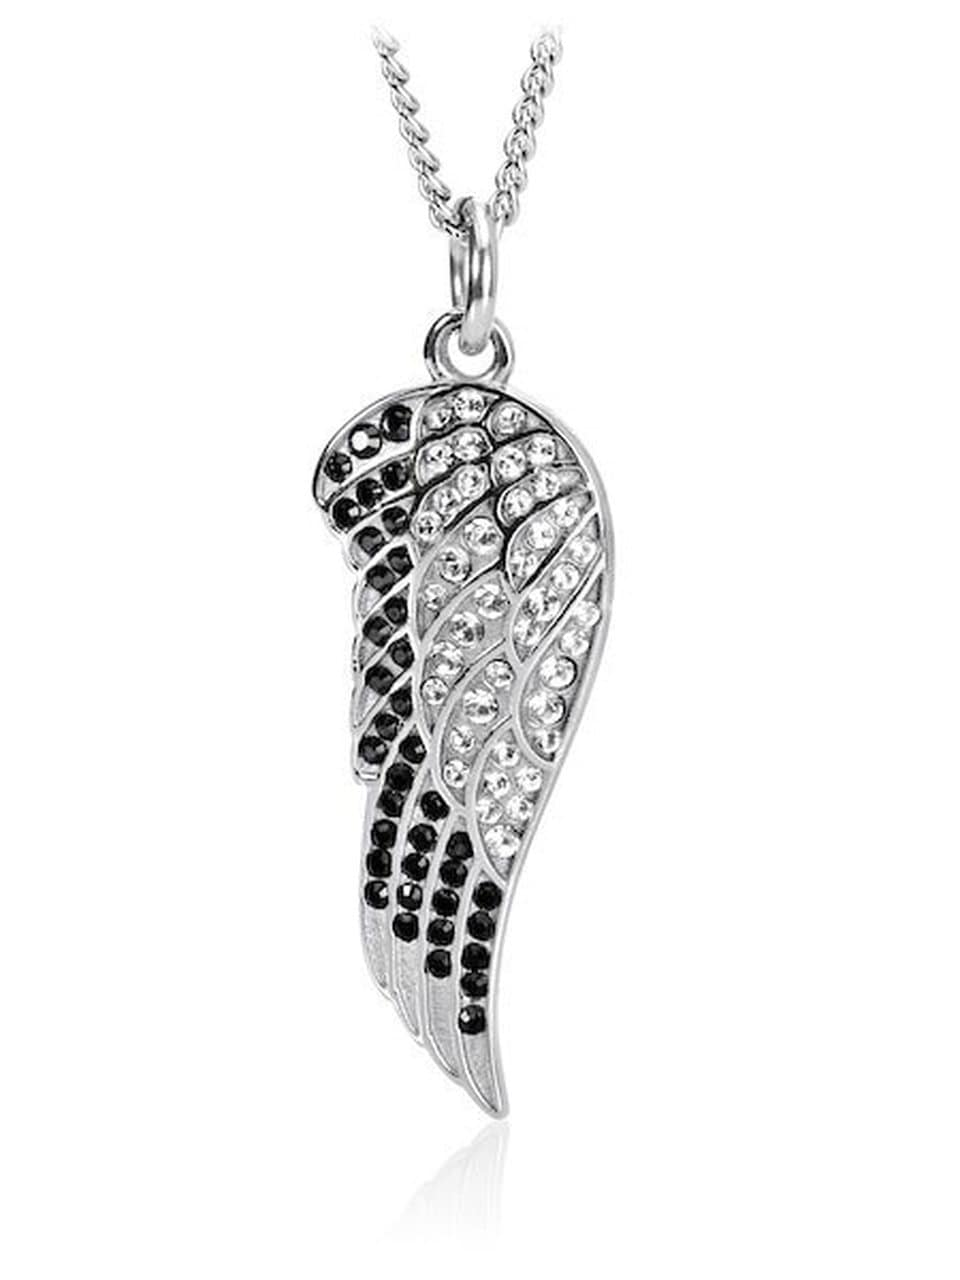 Women's Angel Wing Necklace With Swarovski Crystals